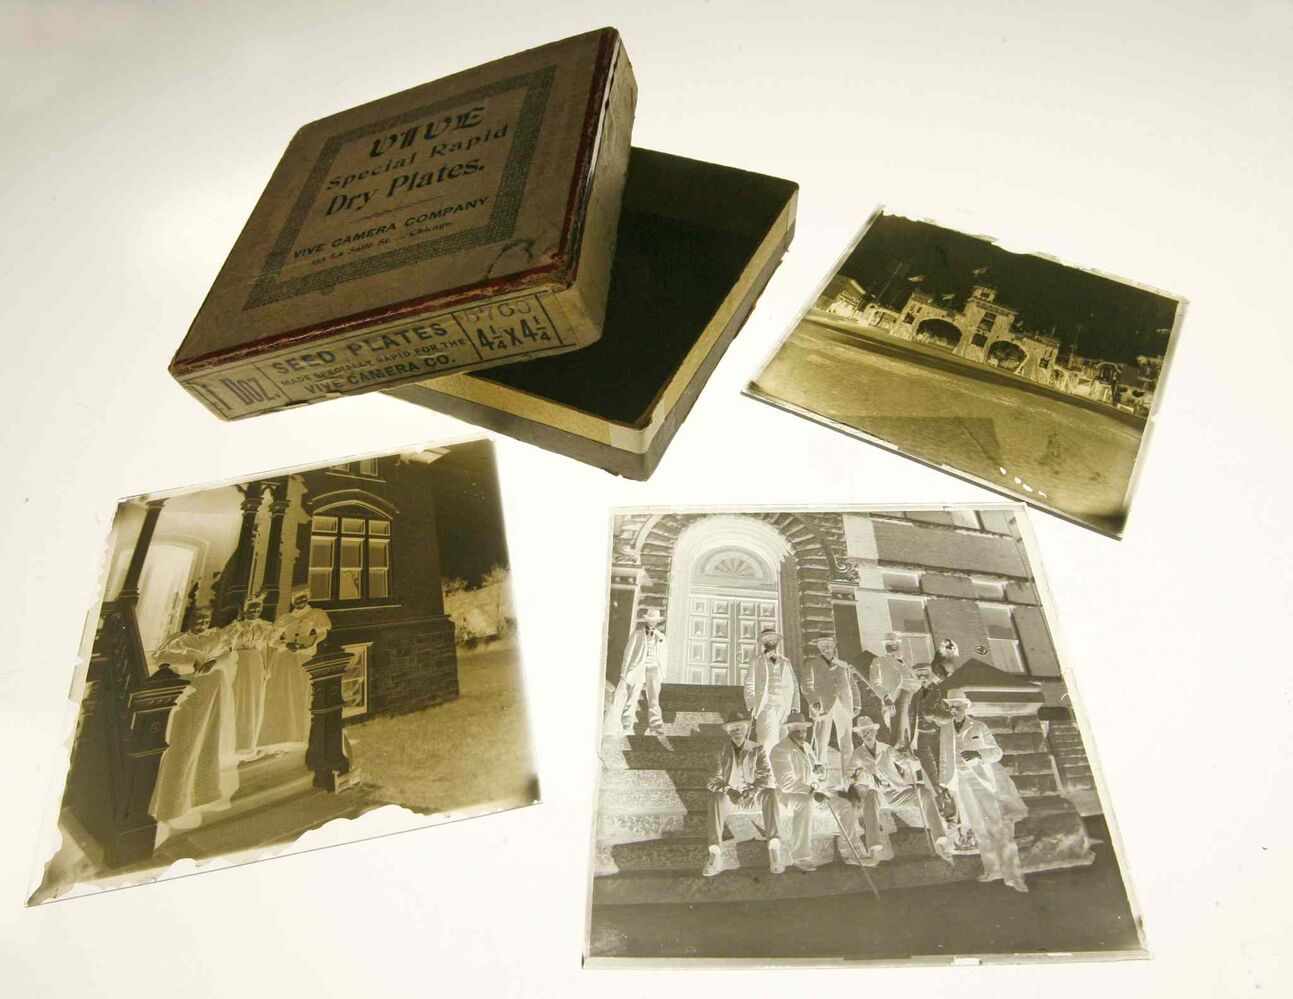 Glass negatives by photographer E.J.C. Smith, taken circa 1898. His photo store was located at 276 Smith Street in Winnipeg.